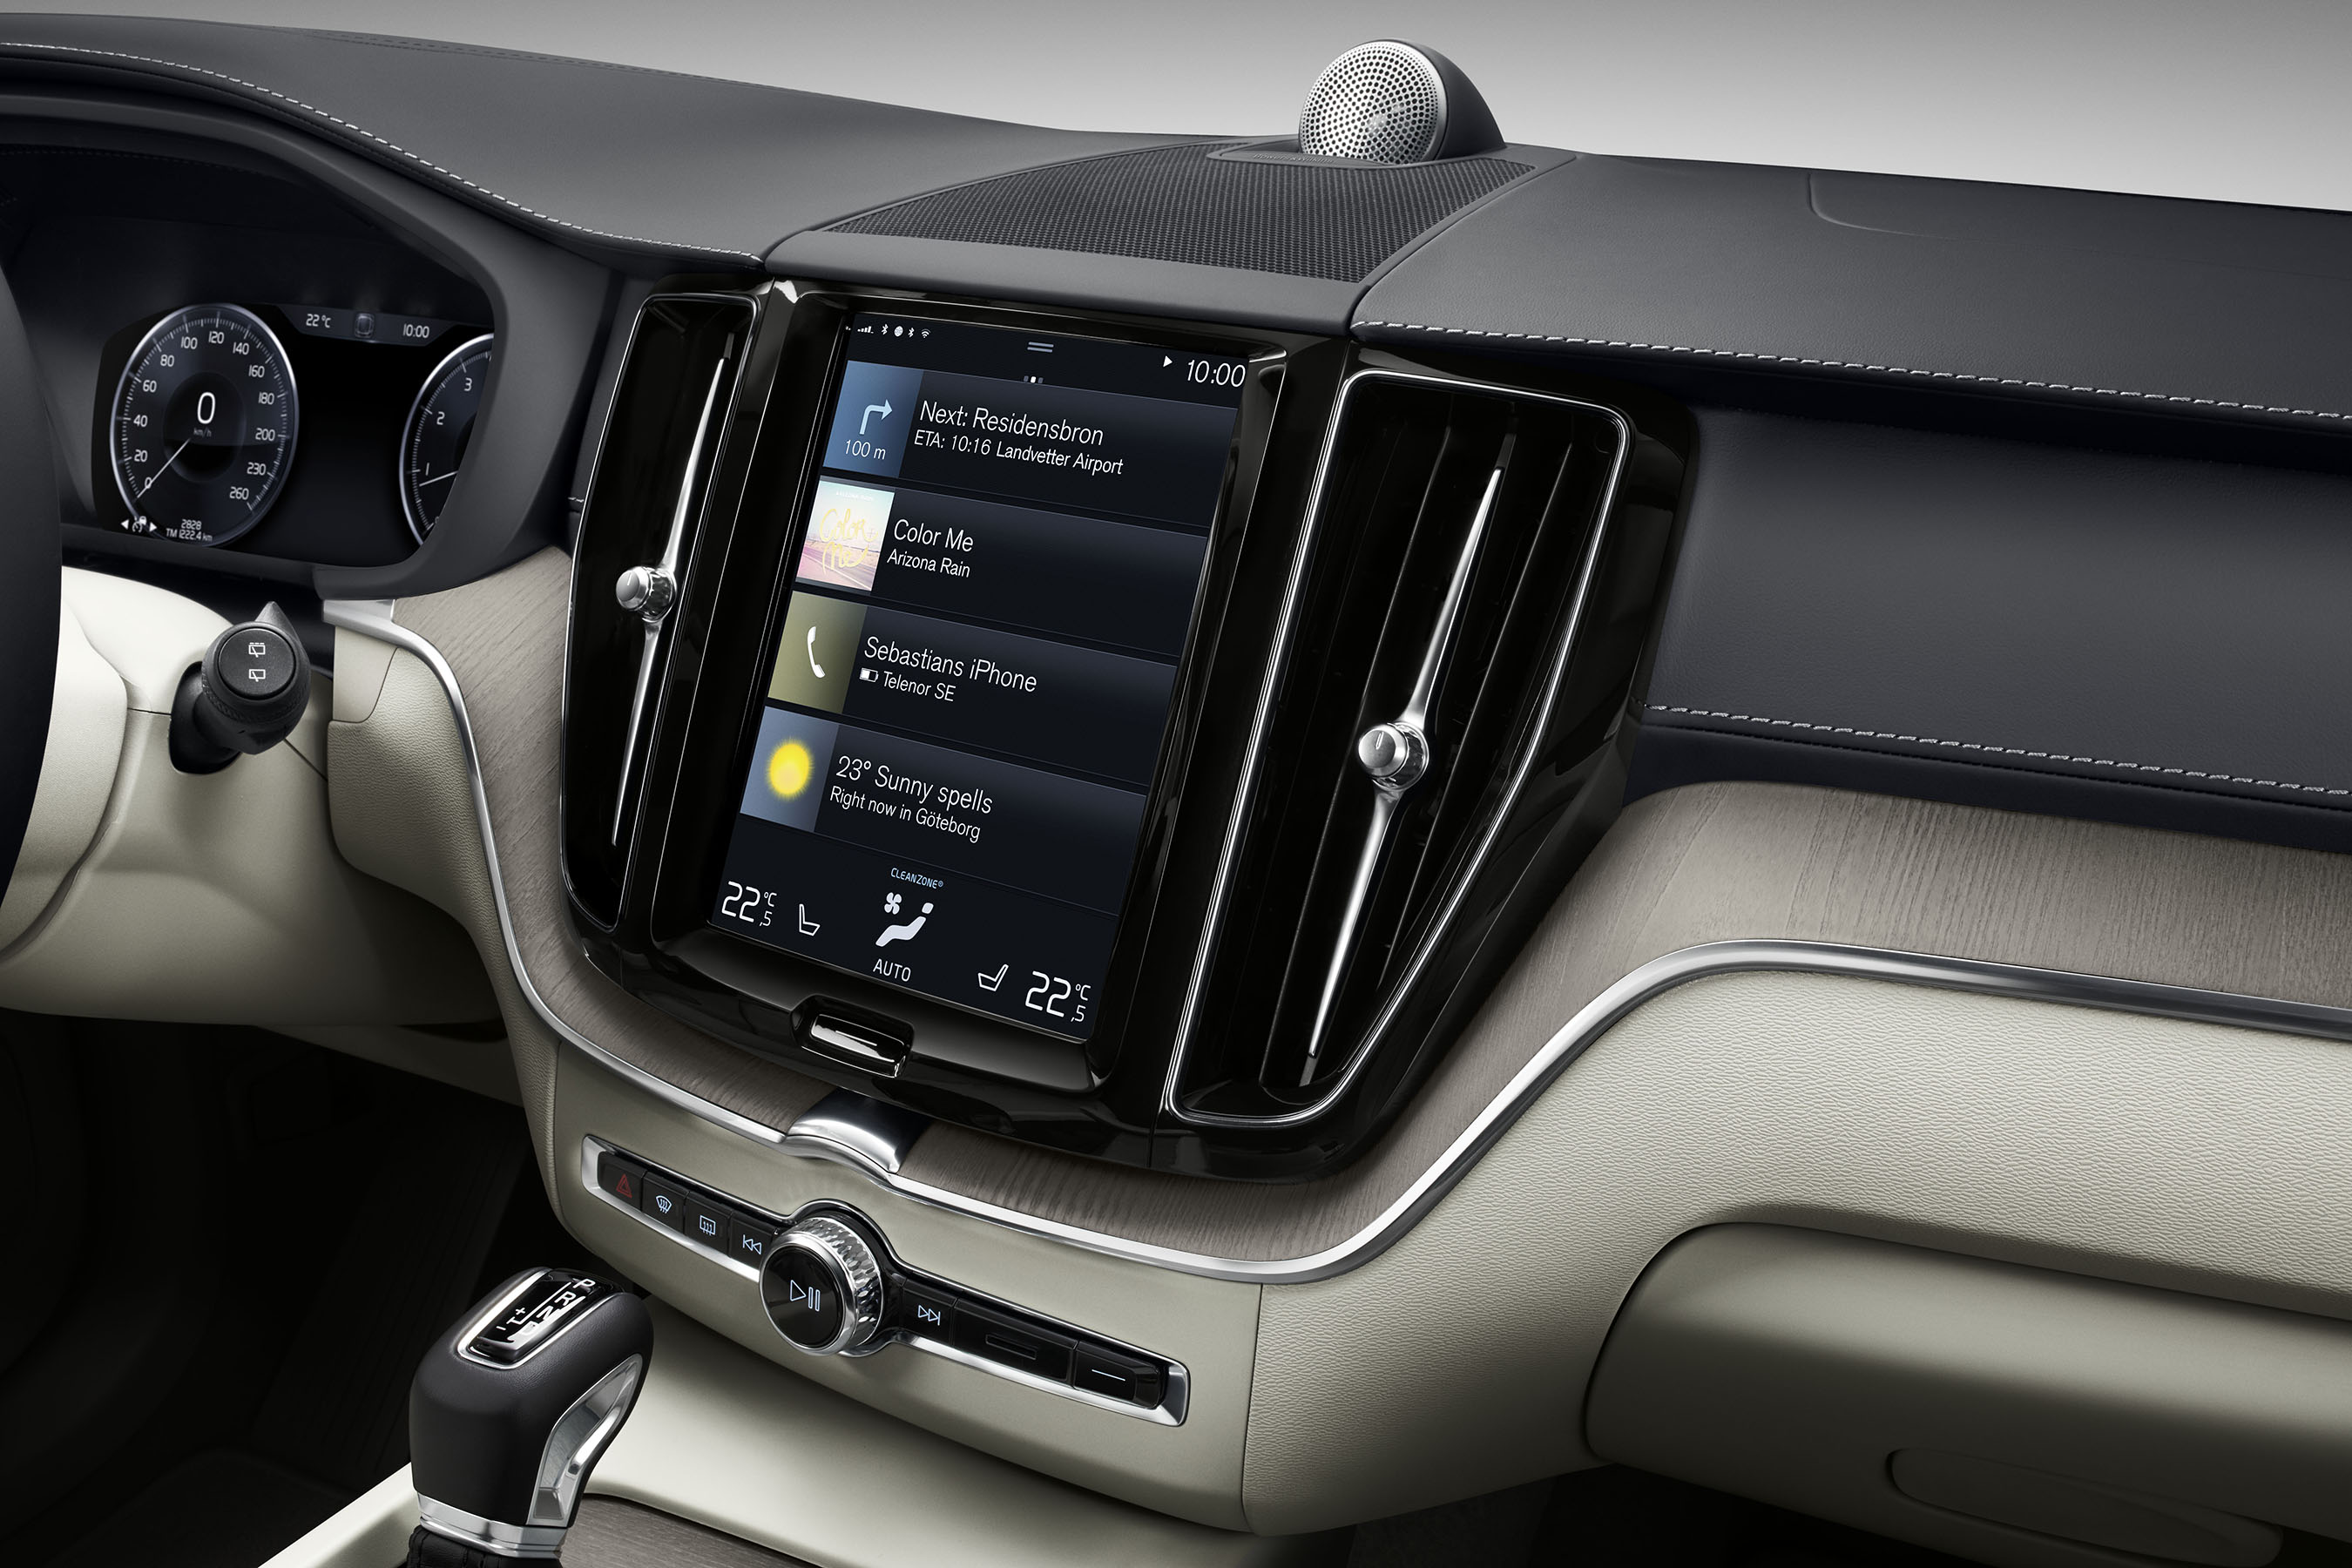 goes news output tune volvo after engine range the new photos touch electric twin ps up treatment to polestar ups